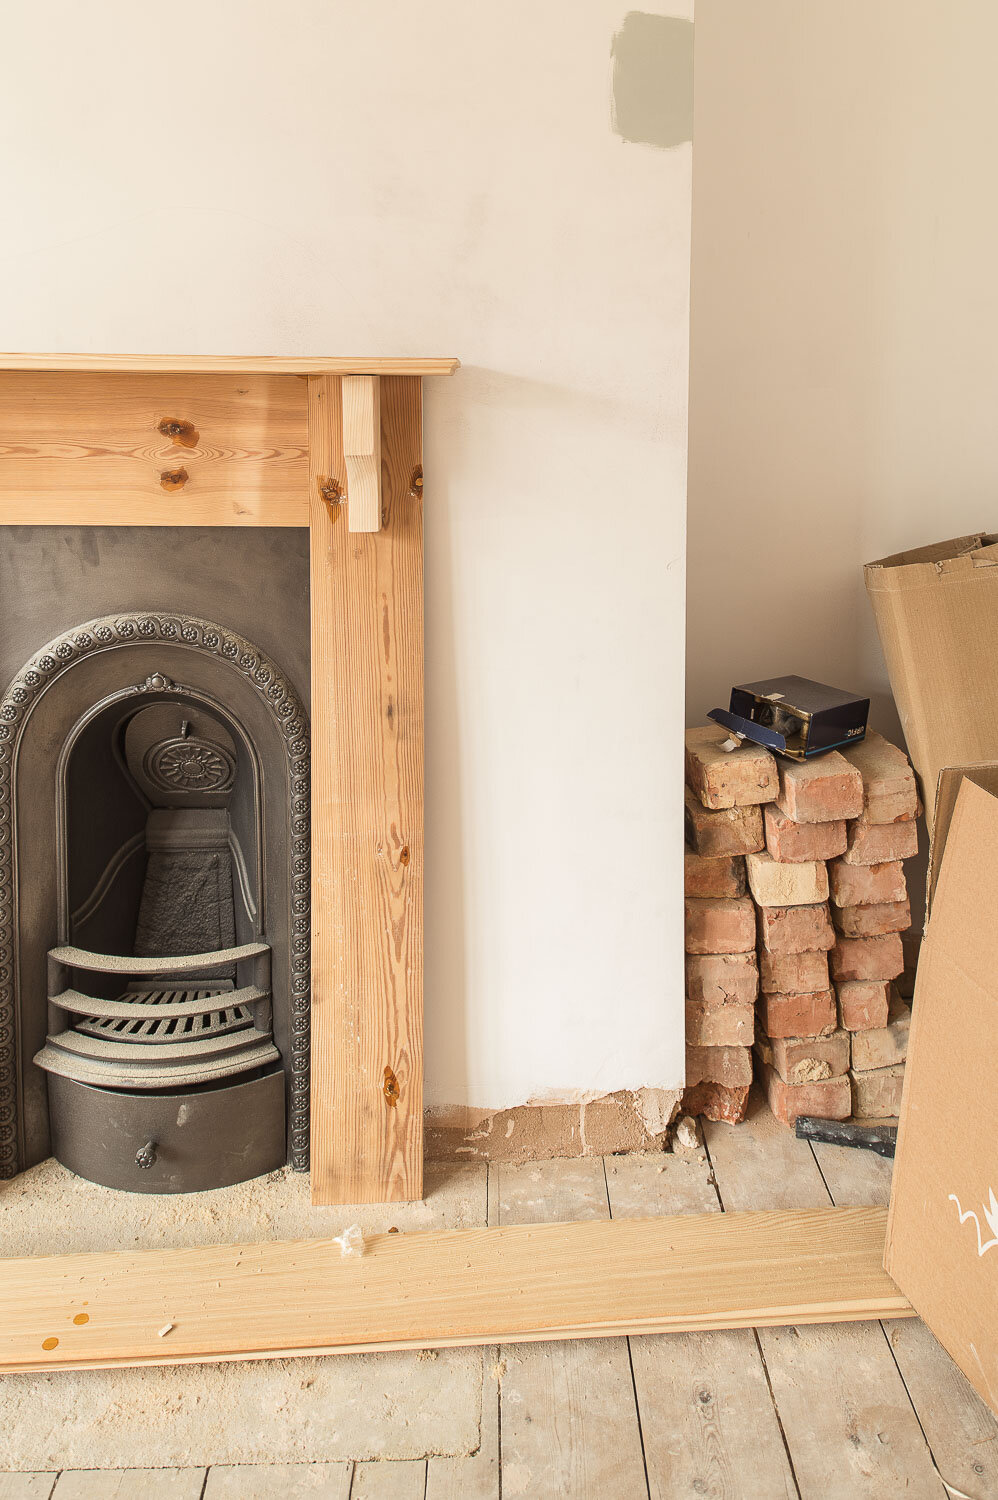 Lifting The Lid On What It S Like Renovating A House During Covid 19 Fifi Mcgee Interiors Renovation Blog